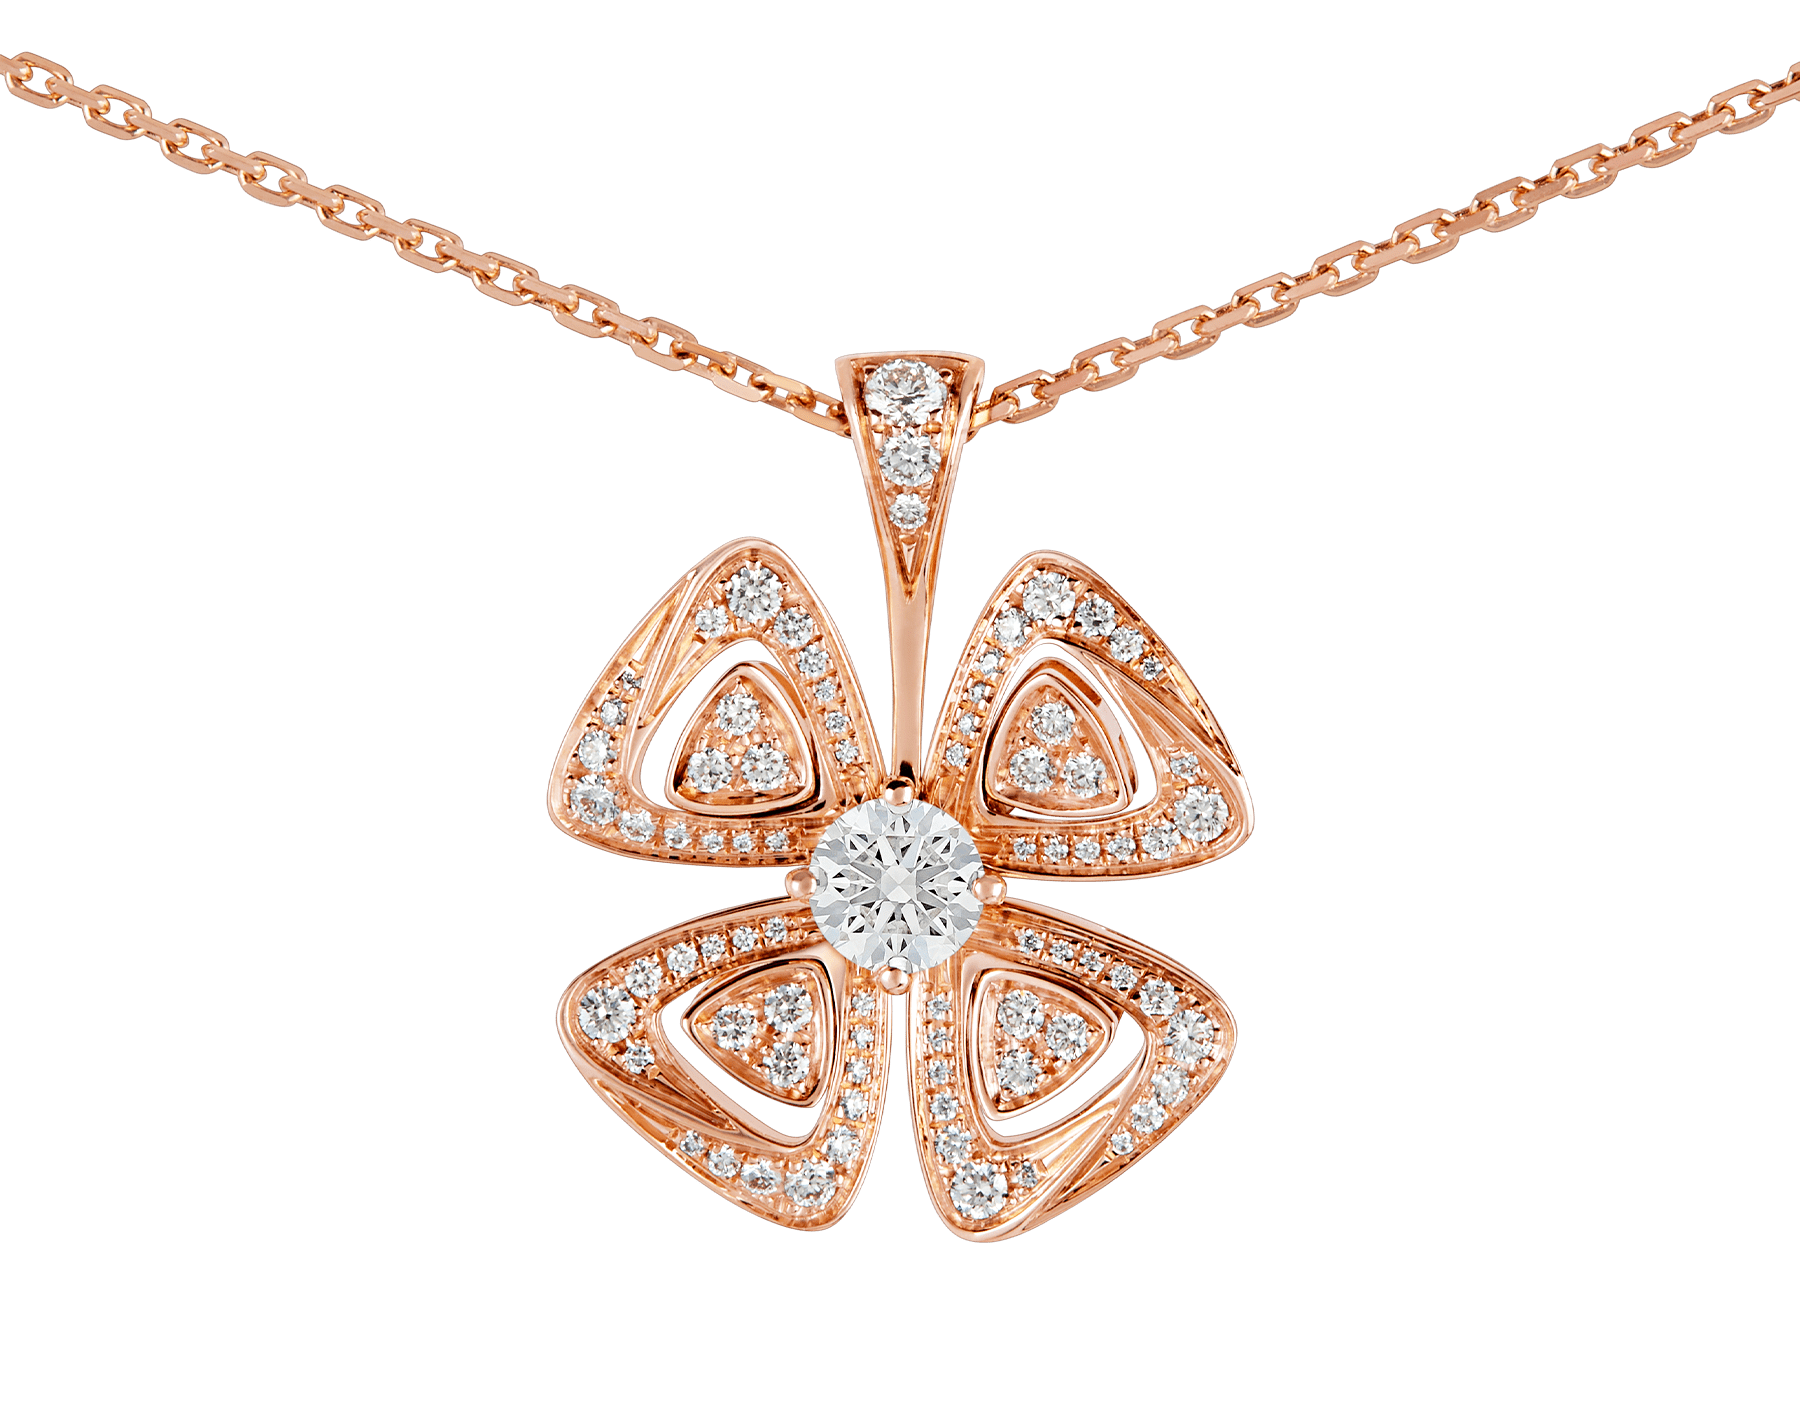 Fiorever 18 kt rose gold necklace set with a central diamond and pavé diamonds. 355885 image 3